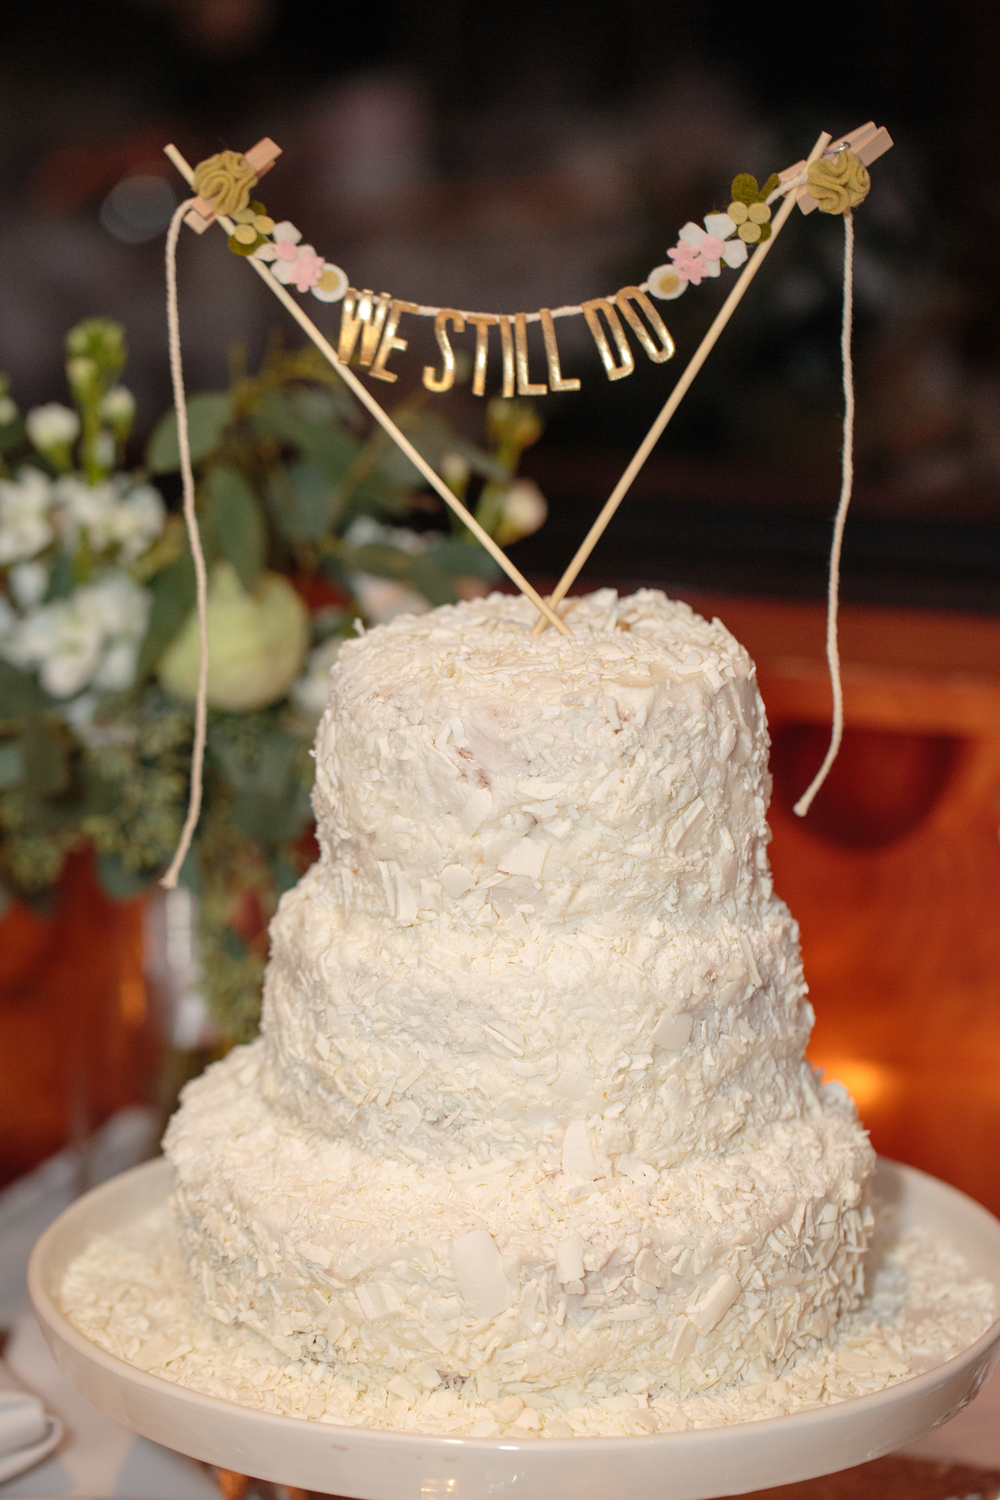 We (Still) Do: Liberty Mountain Resort Wedding Vow Renewal | Shotgunning for Love Letters | We Still Do Cake Topper